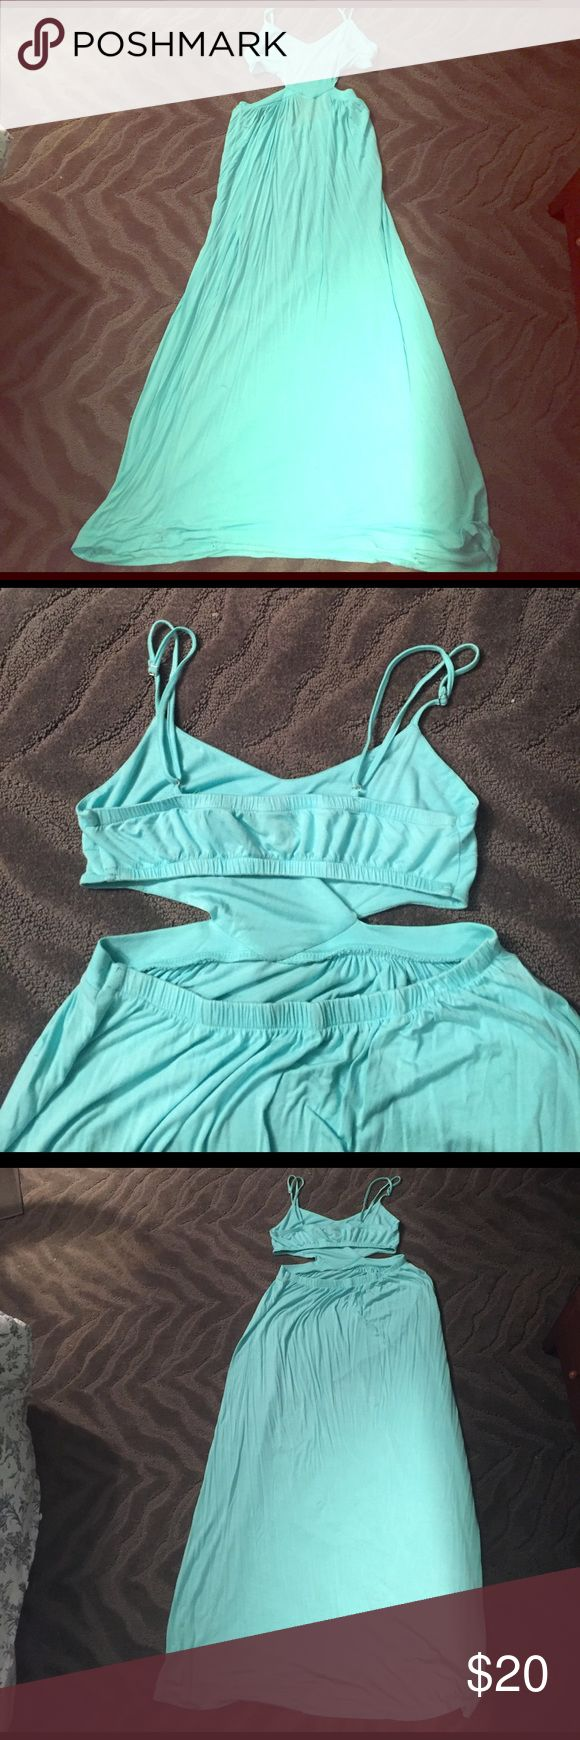 Lira Maxi Dress Teal maxi dress from PacSun. Great for the warmer months. Size medium. Worn less than a few times. Cut off part of the tag ti ensure it didn't peek out the back. lira Dresses Maxi